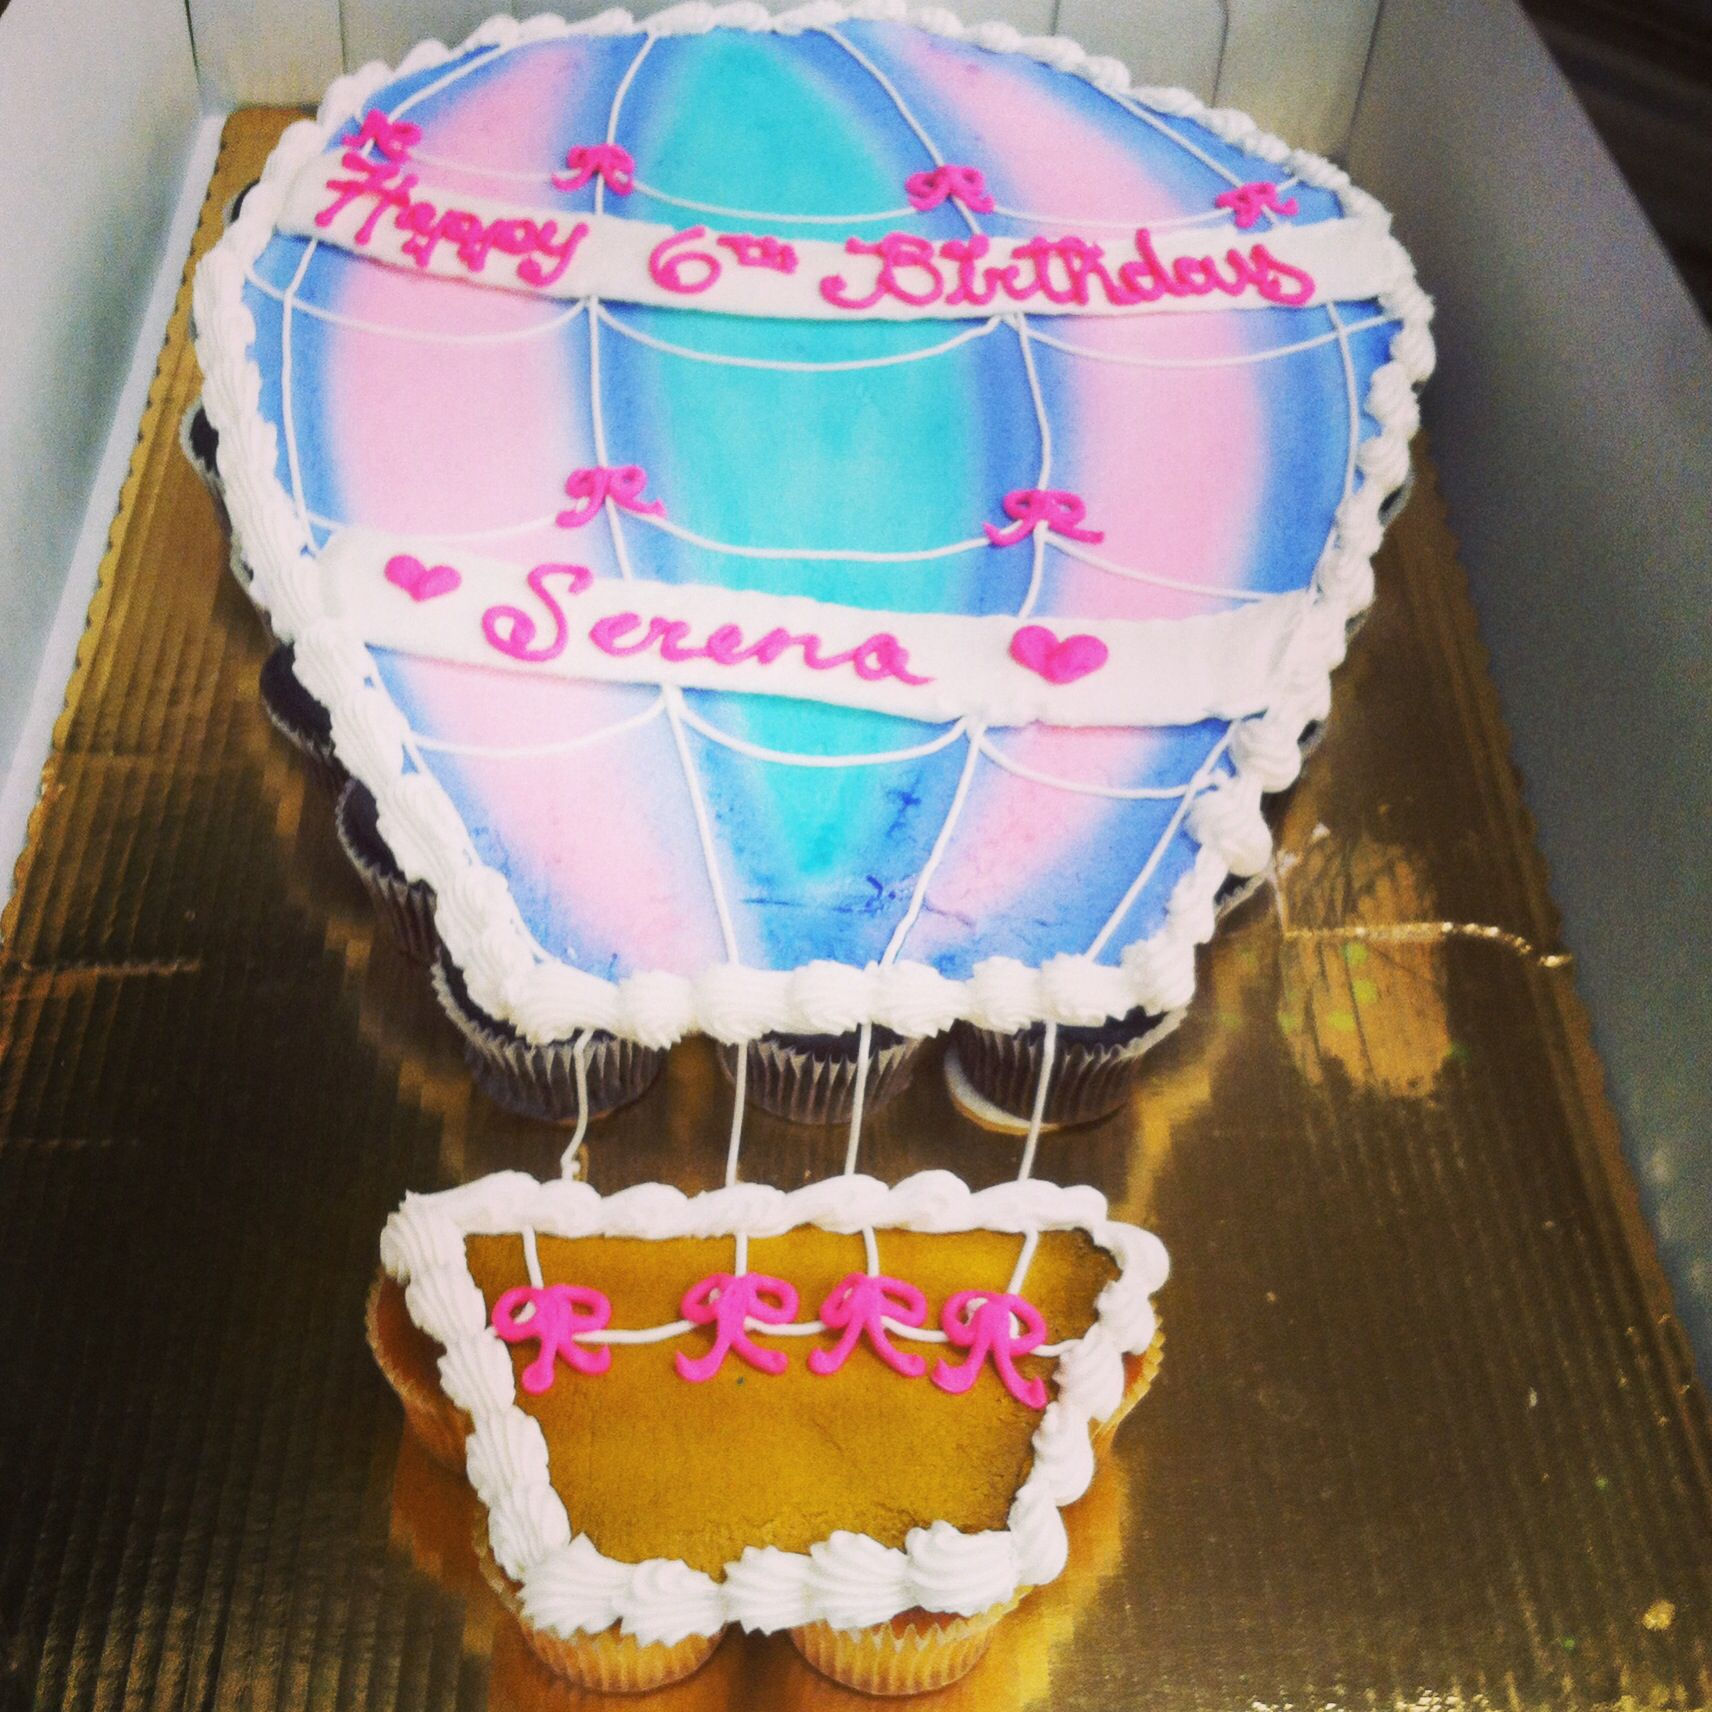 Hot Air Balloon Pullapart Cake